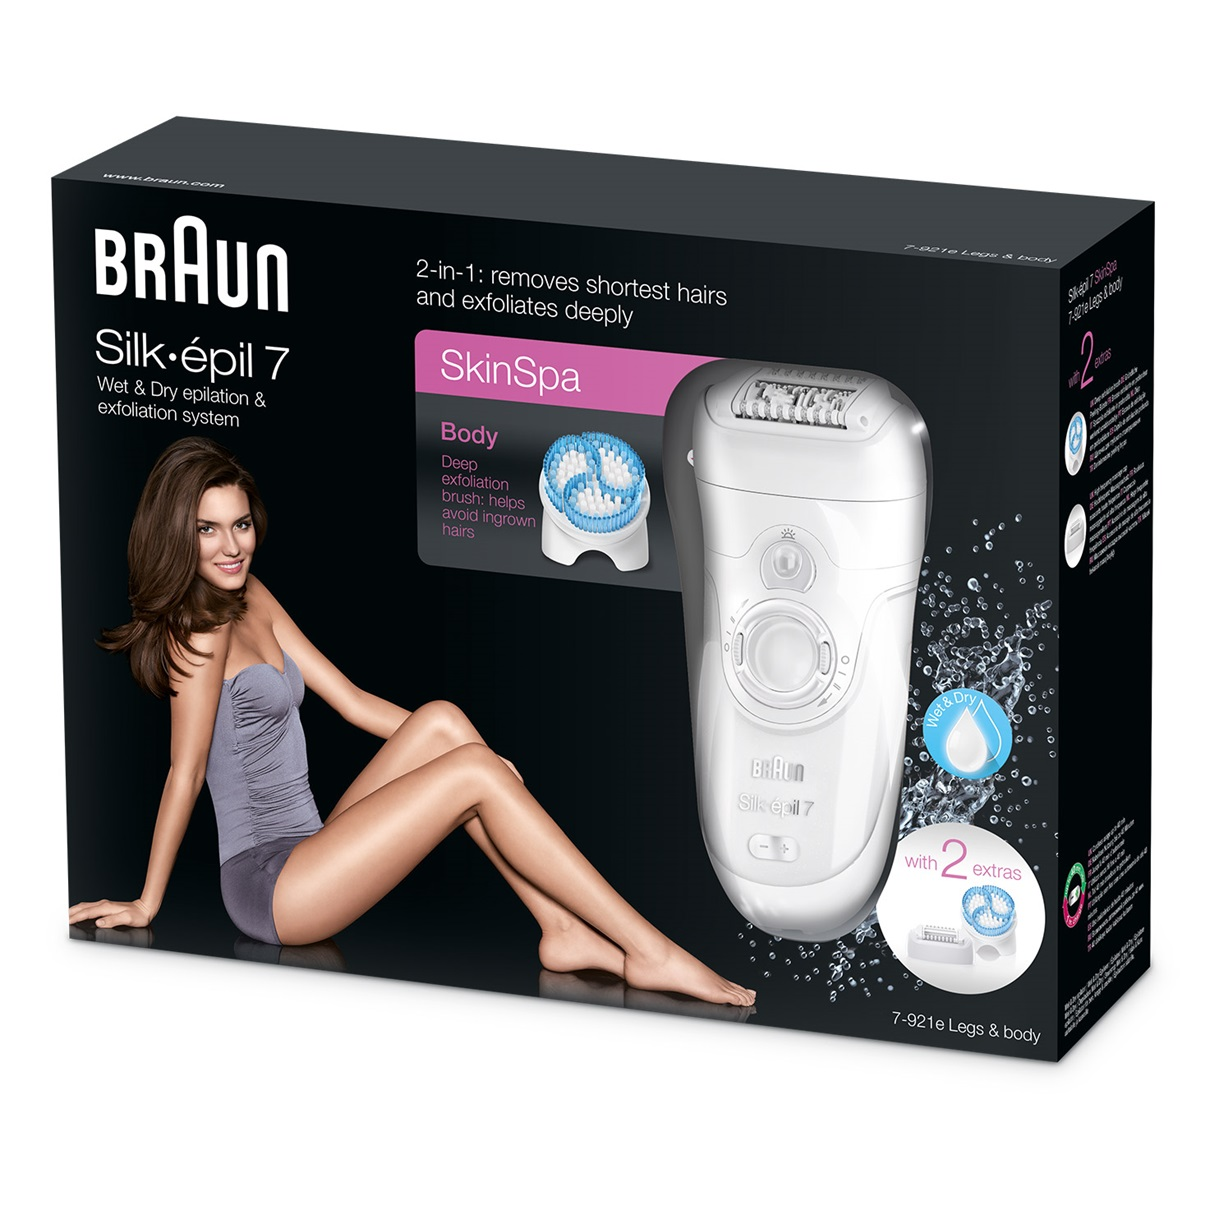 Braun Silk-épil 7 7-921e epilator packaging